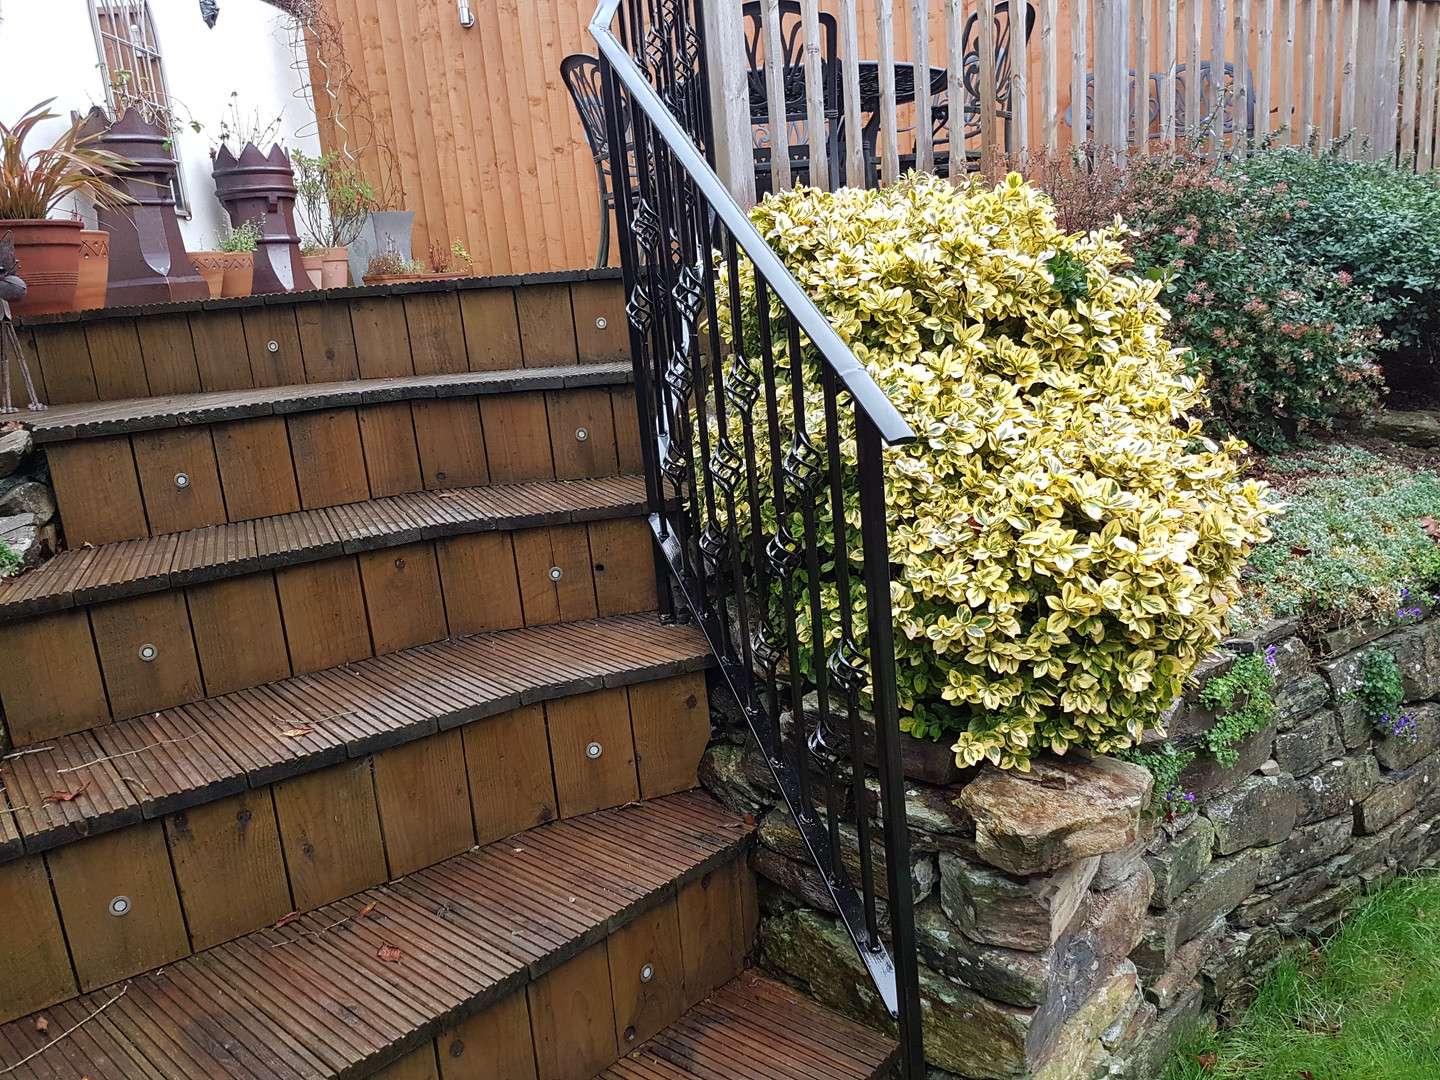 Wrought Iron wrailings